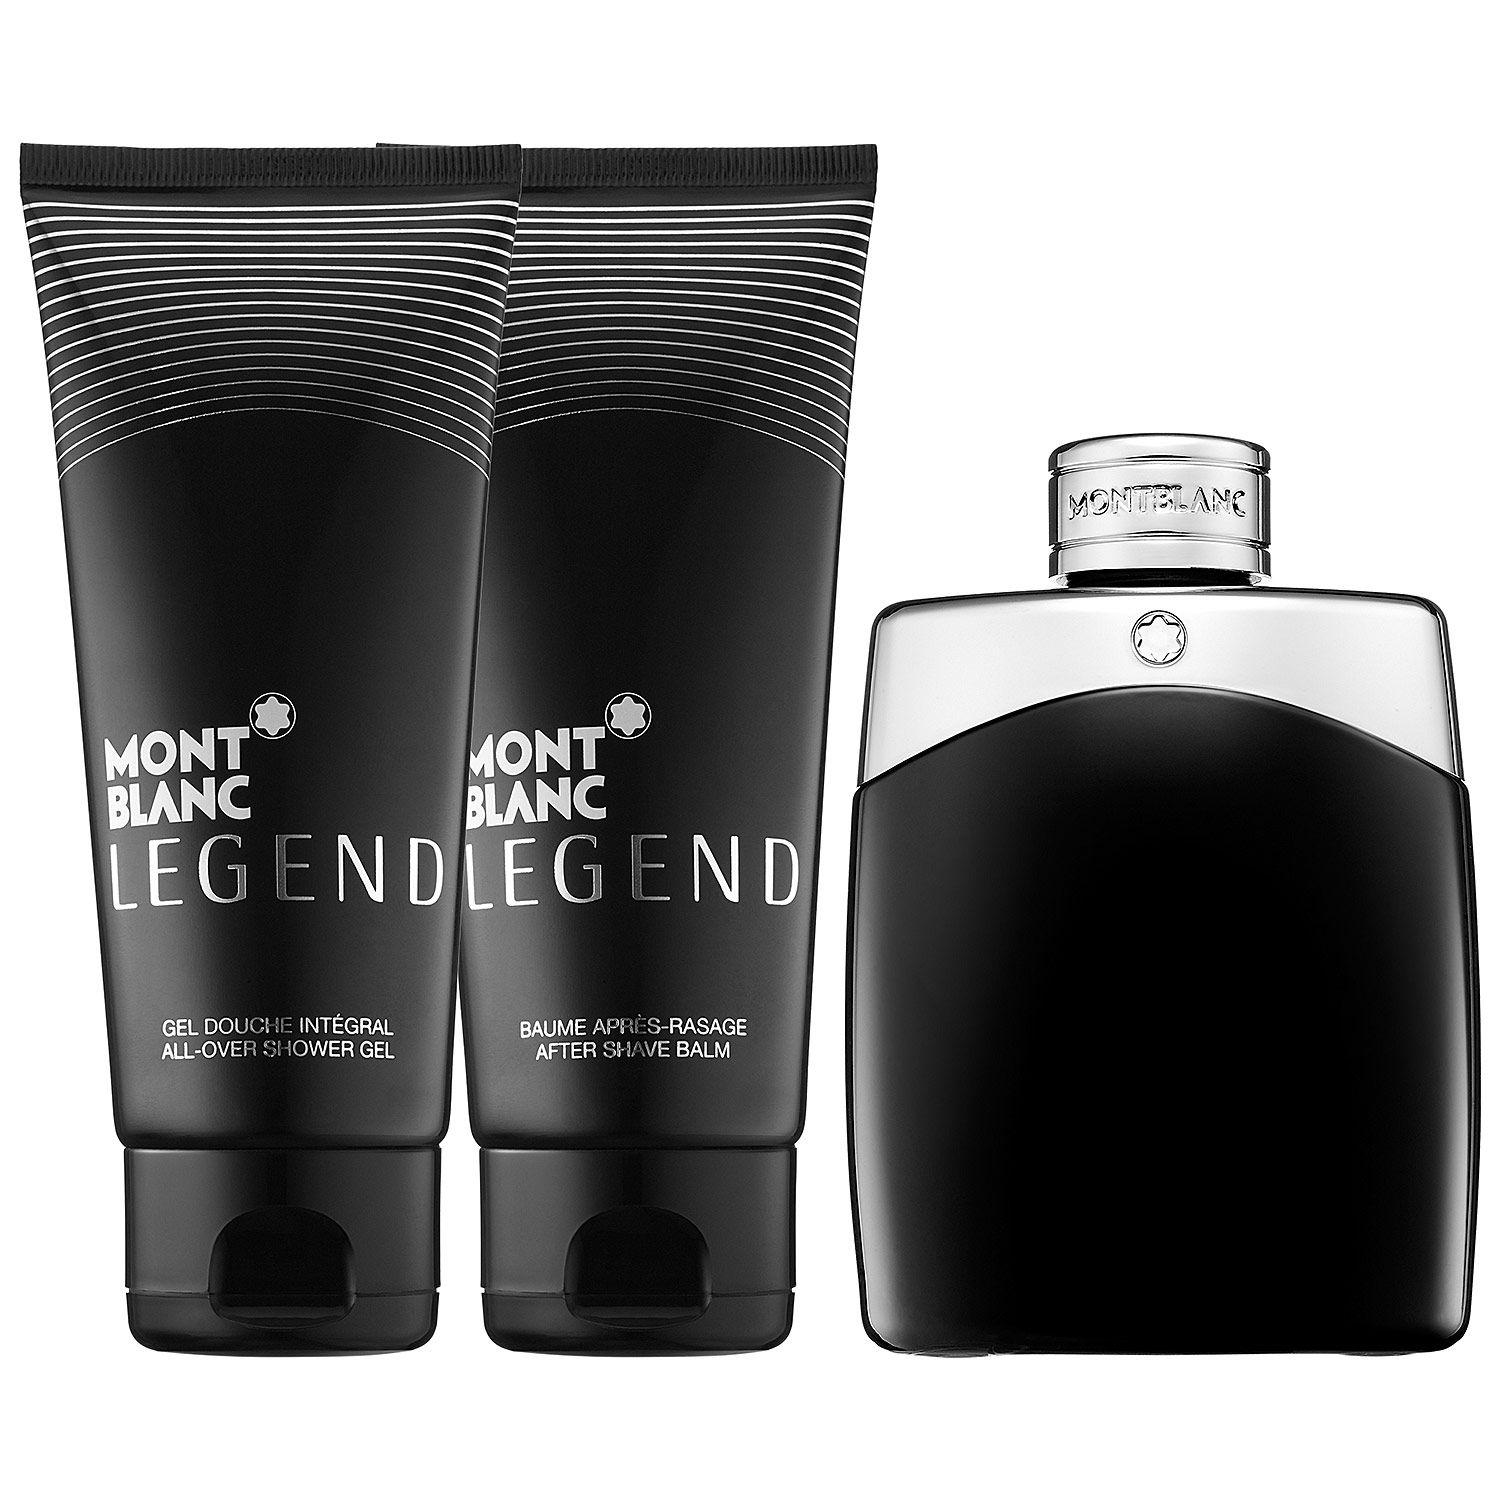 8eaa2c6b085e4 Montblanc Legend Gift Set  Sephora  gifts  giftsforhim   Gifts for ...